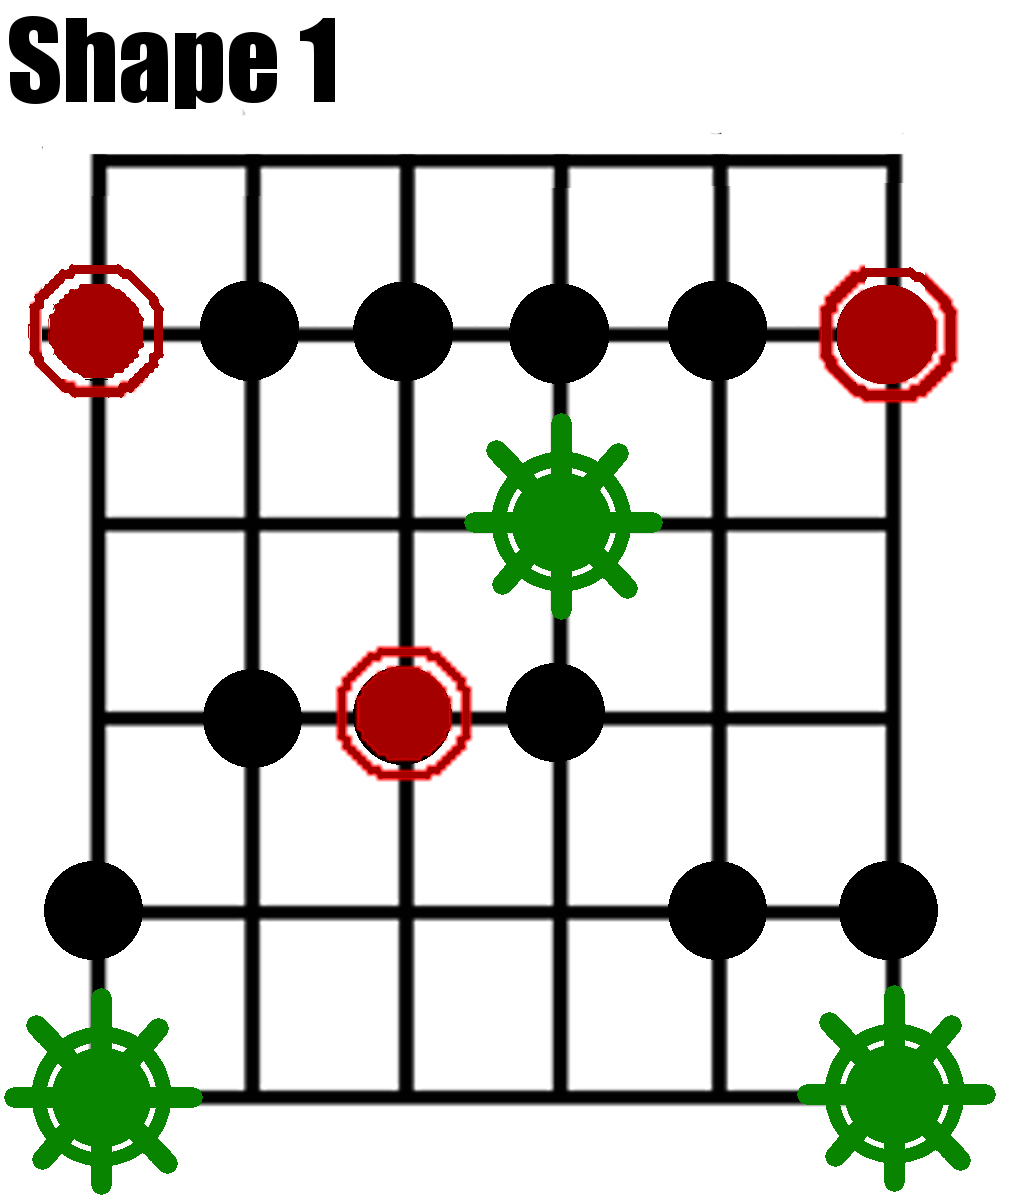 a scale diagram of the minor pentatonic on the guitar neck with the position of the major third highlighted in green